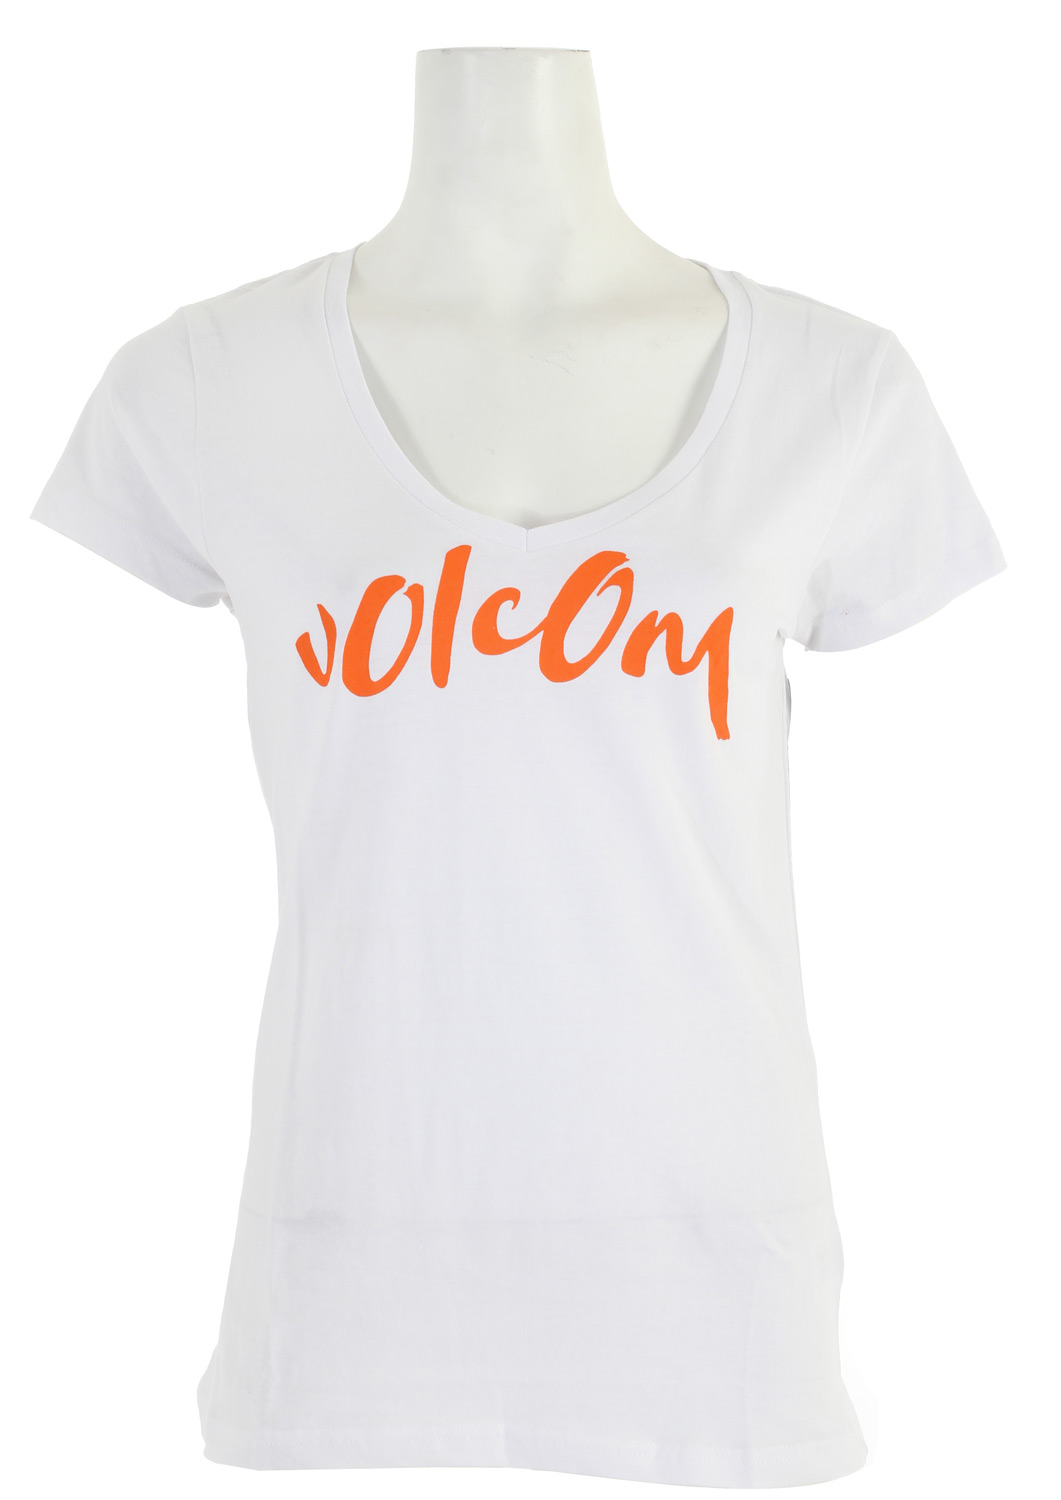 "Surf Key Features of The Volcom Core Script Slim Scoop V T-Shirt: Slim Fit T-Shirt Crew Neck Short Sleeve 100% Cotton Extra Fine Jersey, 40s. Scooped V-neck tee with waterbase ink screen at front chest. 26 3/4"" - $12.95"